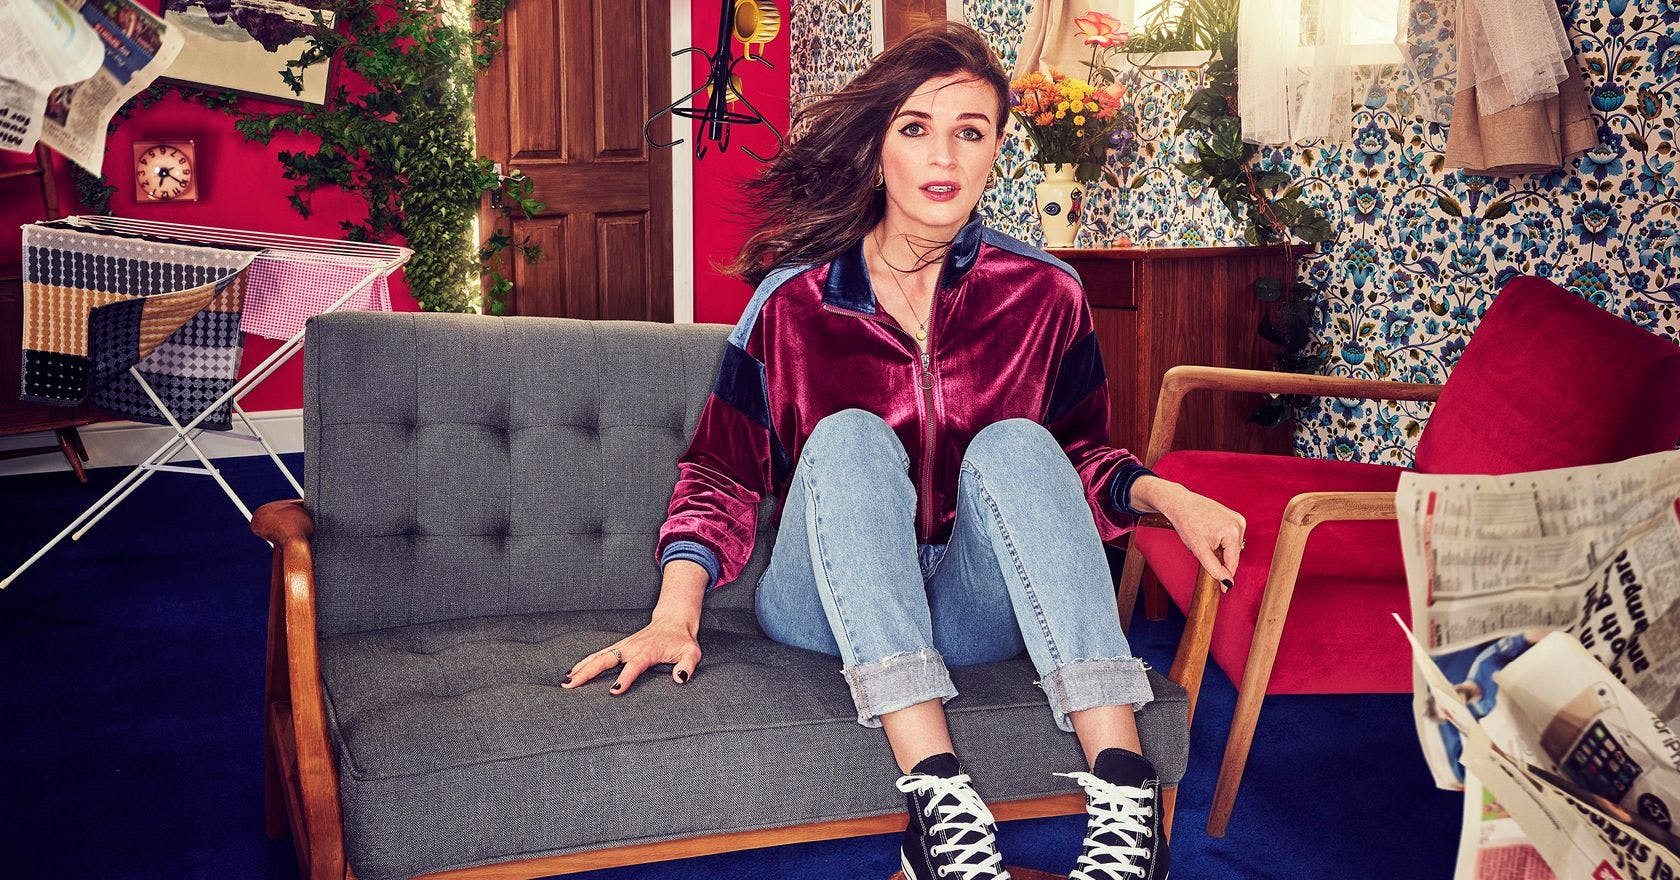 Mental Health Awards: Aisling Bea's This Way Up brilliantly captures life post breakdown